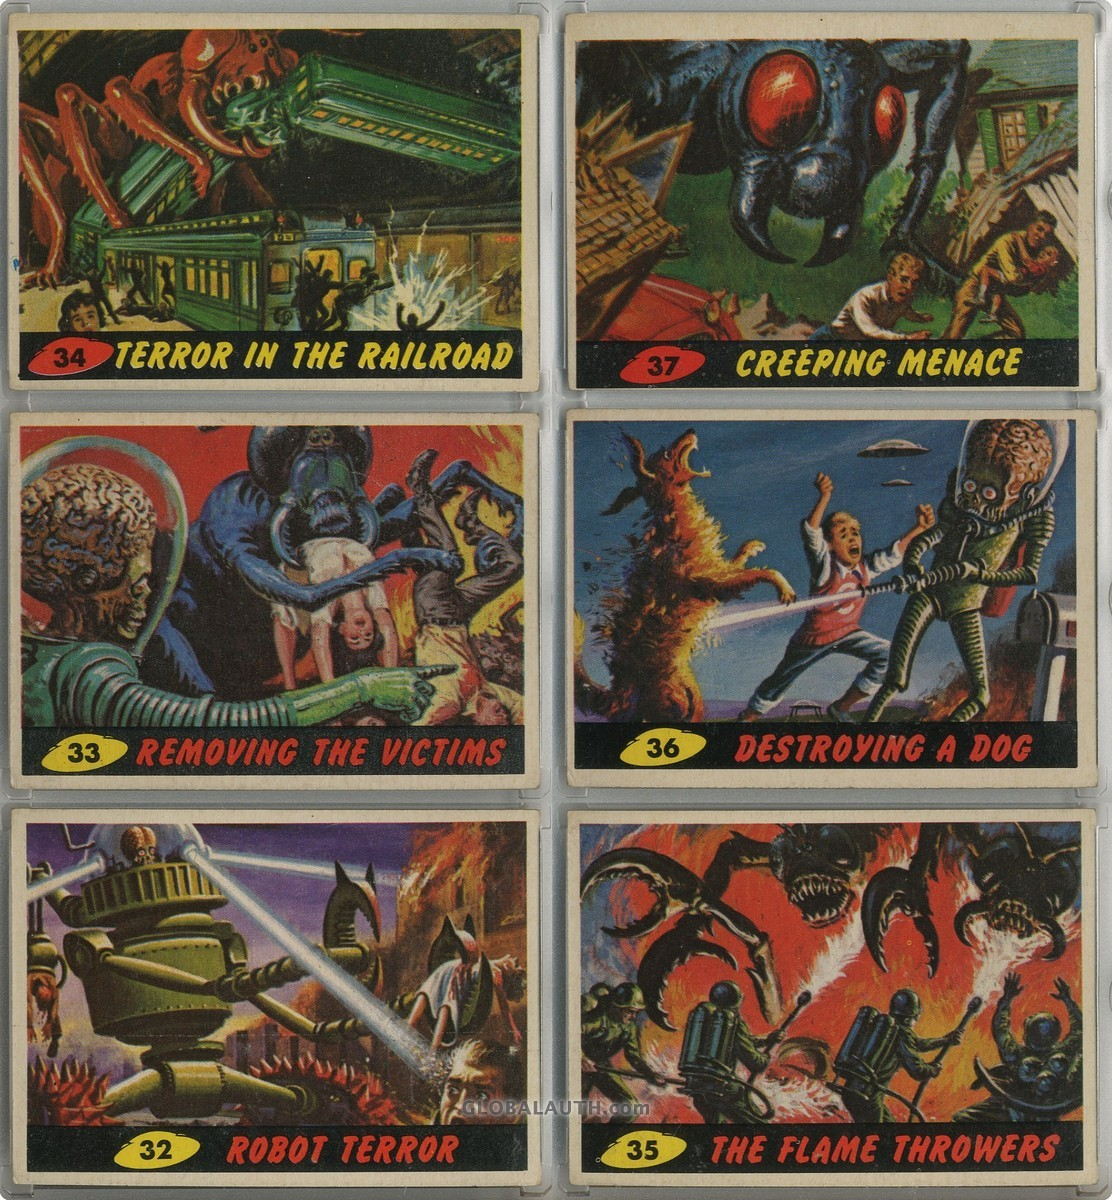 1962-mars-attacks-non-sports-card-set-set-images.jpg, #10